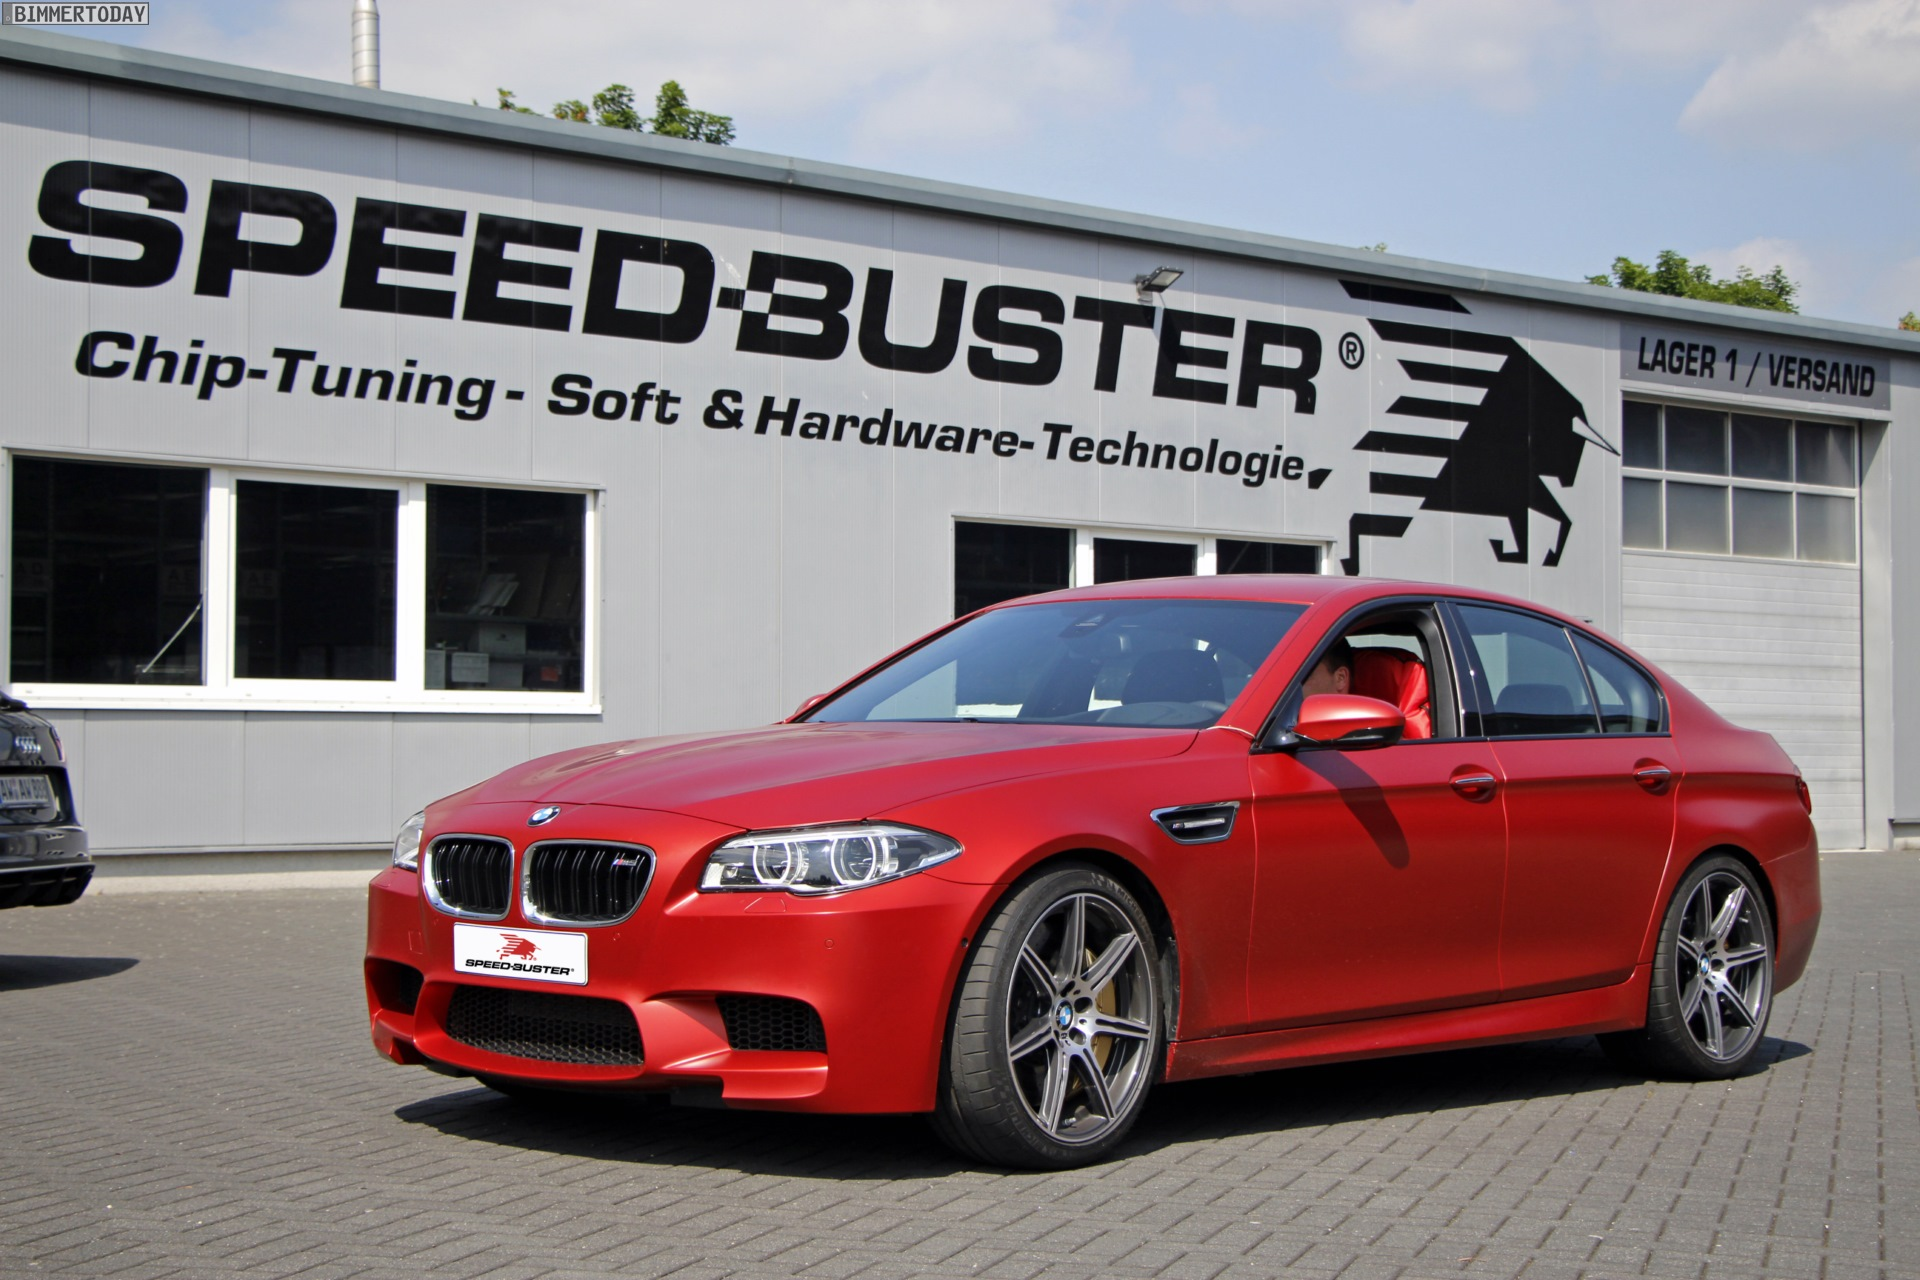 F10 Bmw M5 Lci Extra Power For The Top Model Bmw Car Tuning